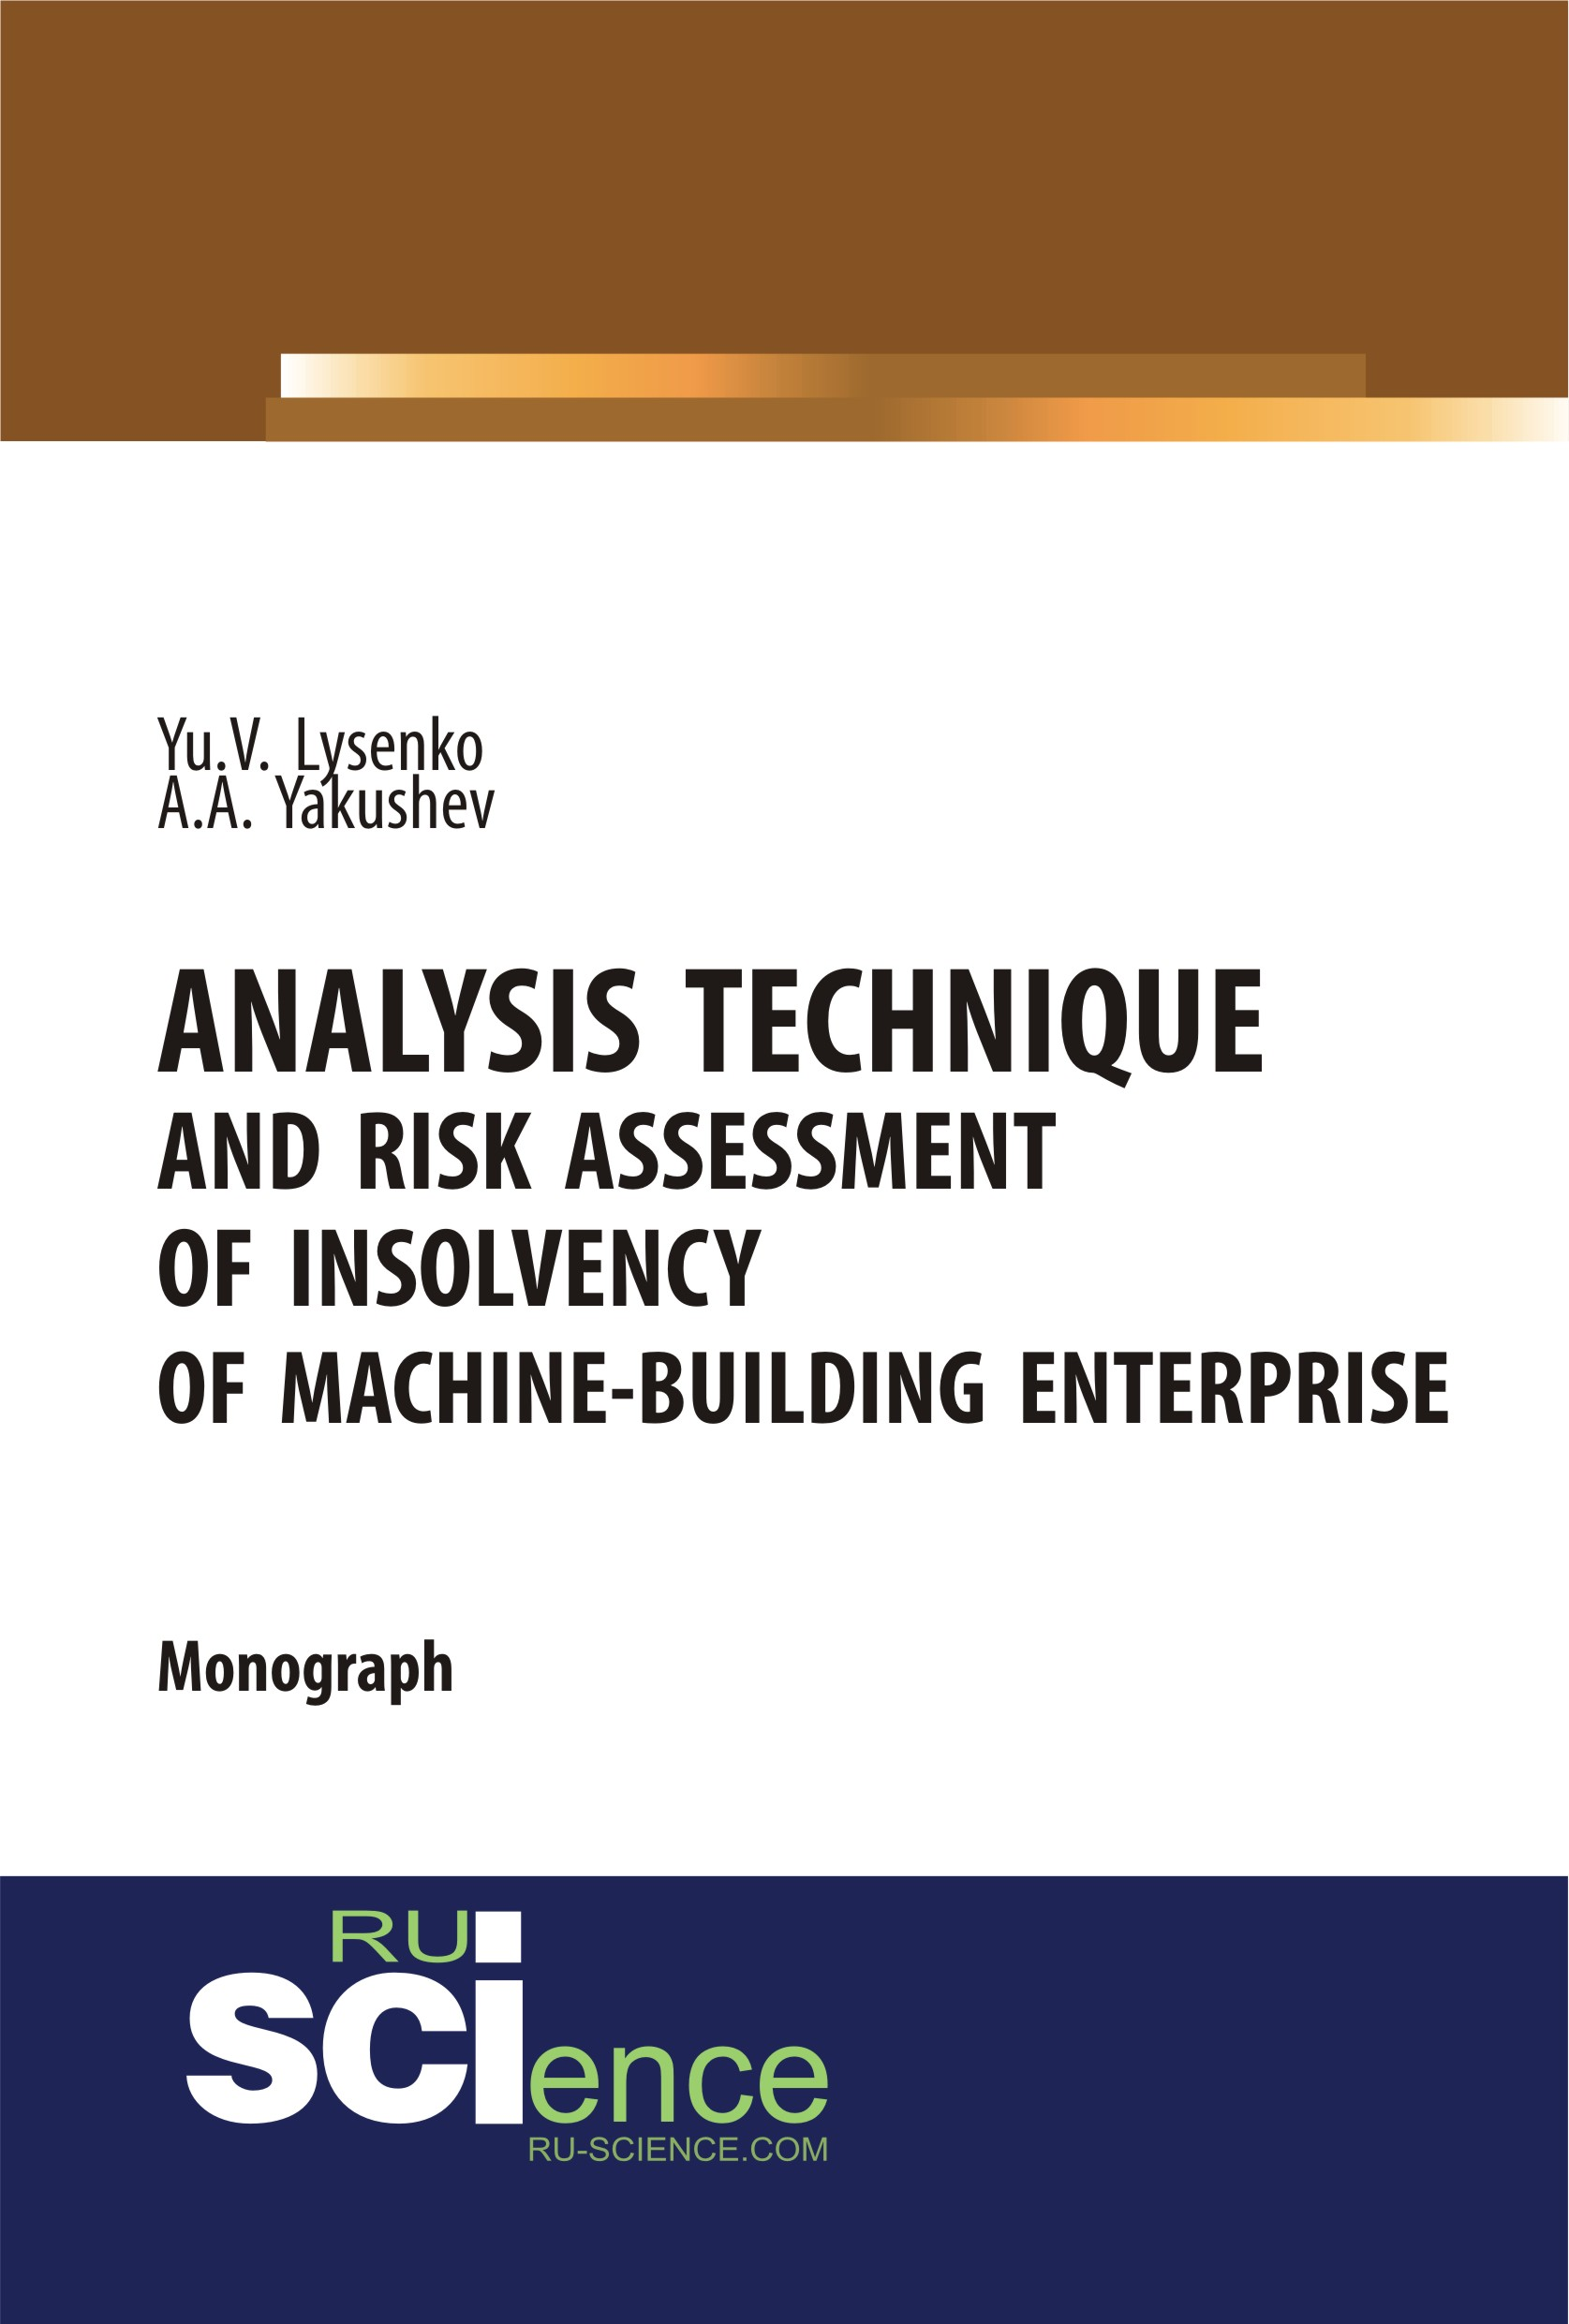 Ю. В. Лысенко Analysis technique and risk assessment of insolvency of machine-building enterprise a criminological analysis of copper cable theft in gauteng